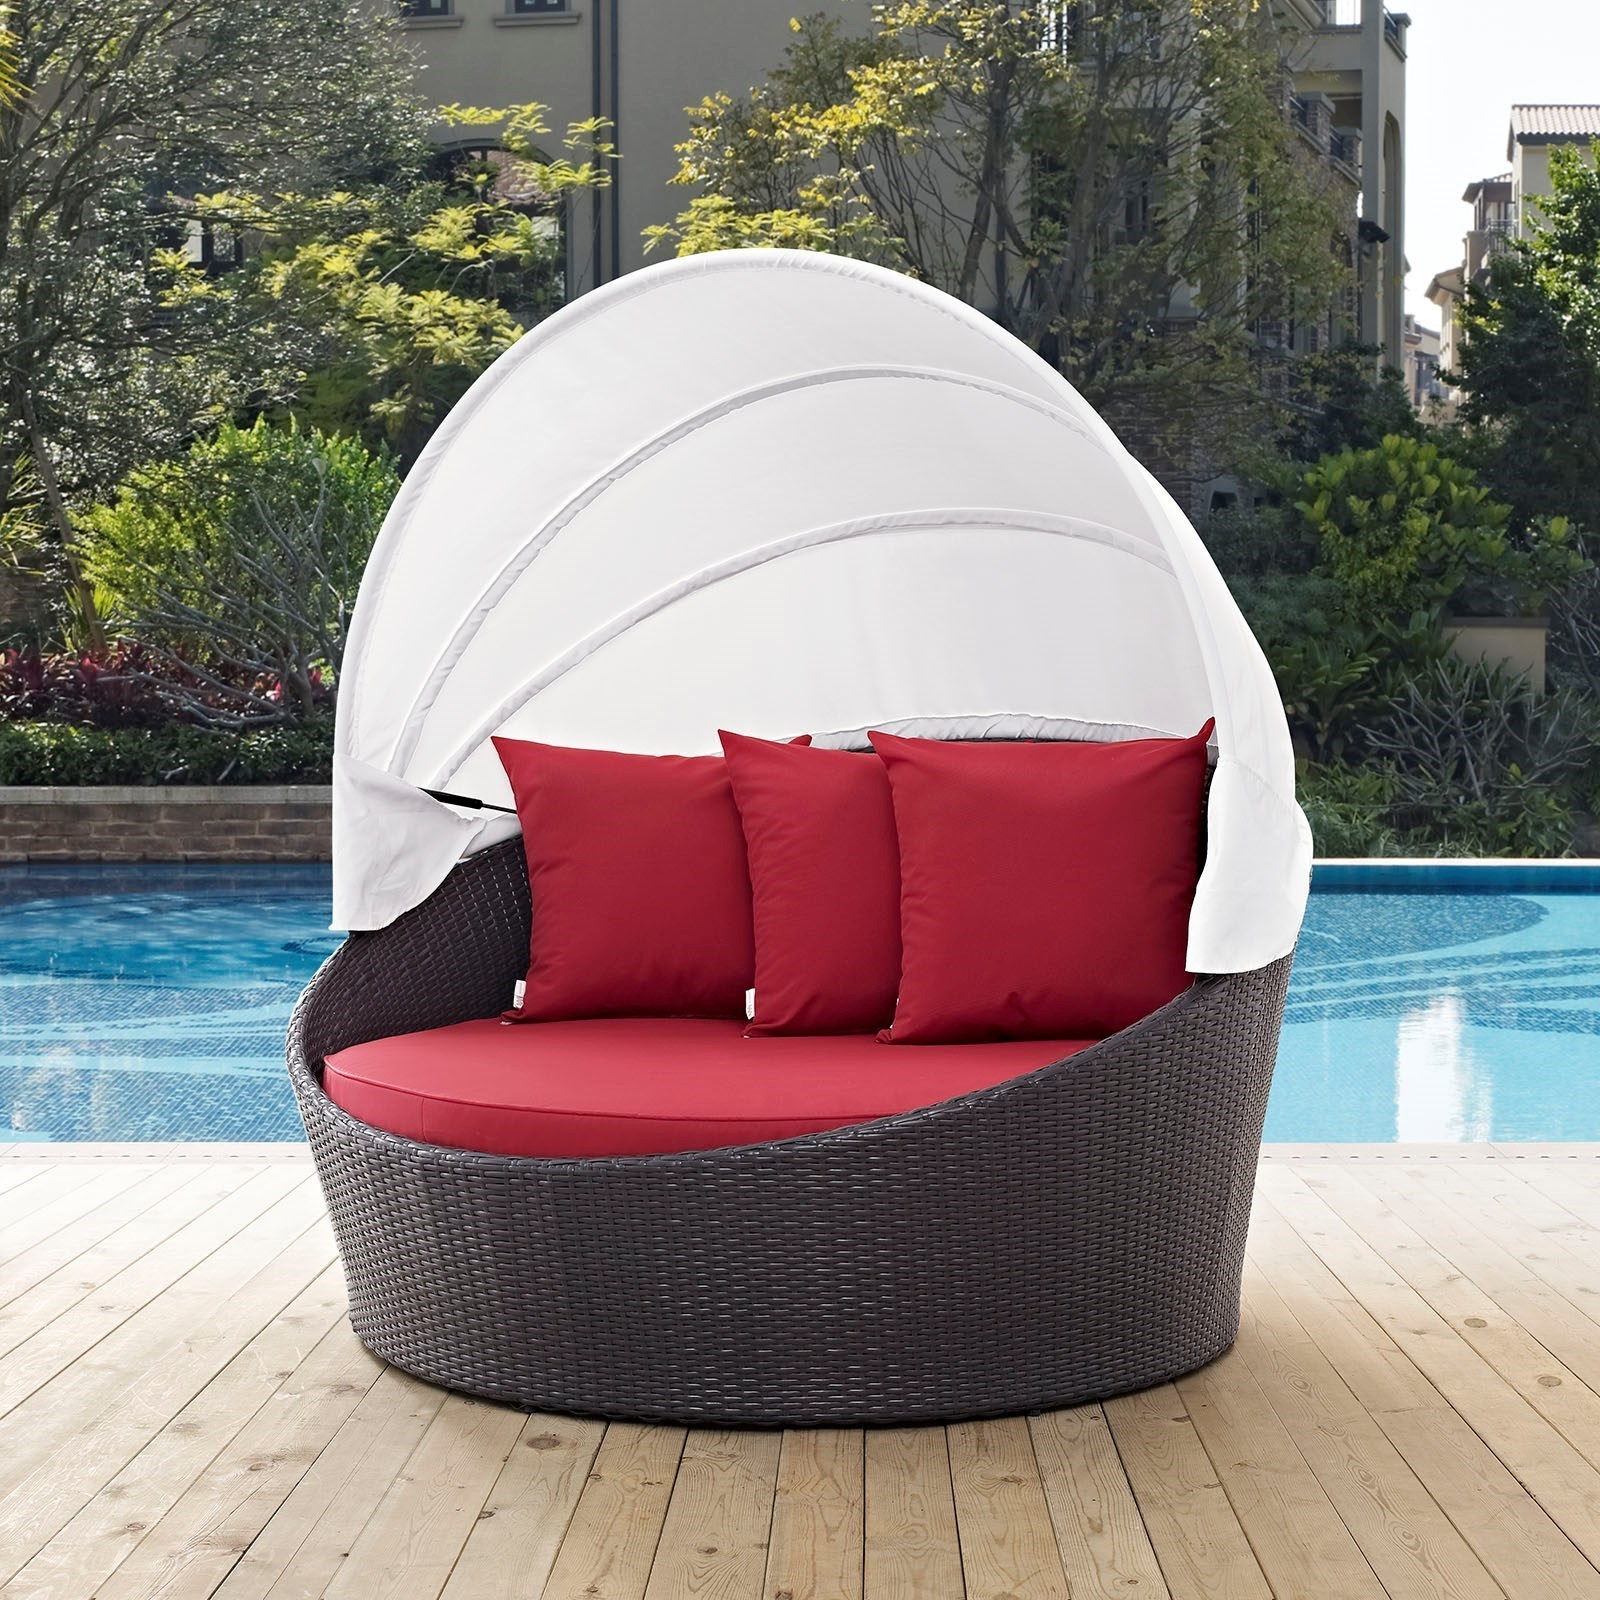 Most Popular Behling Canopy Patio Daybeds With Cushions With Furniture: Cool Patio Daybed With Alluring Cushions For (View 24 of 25)